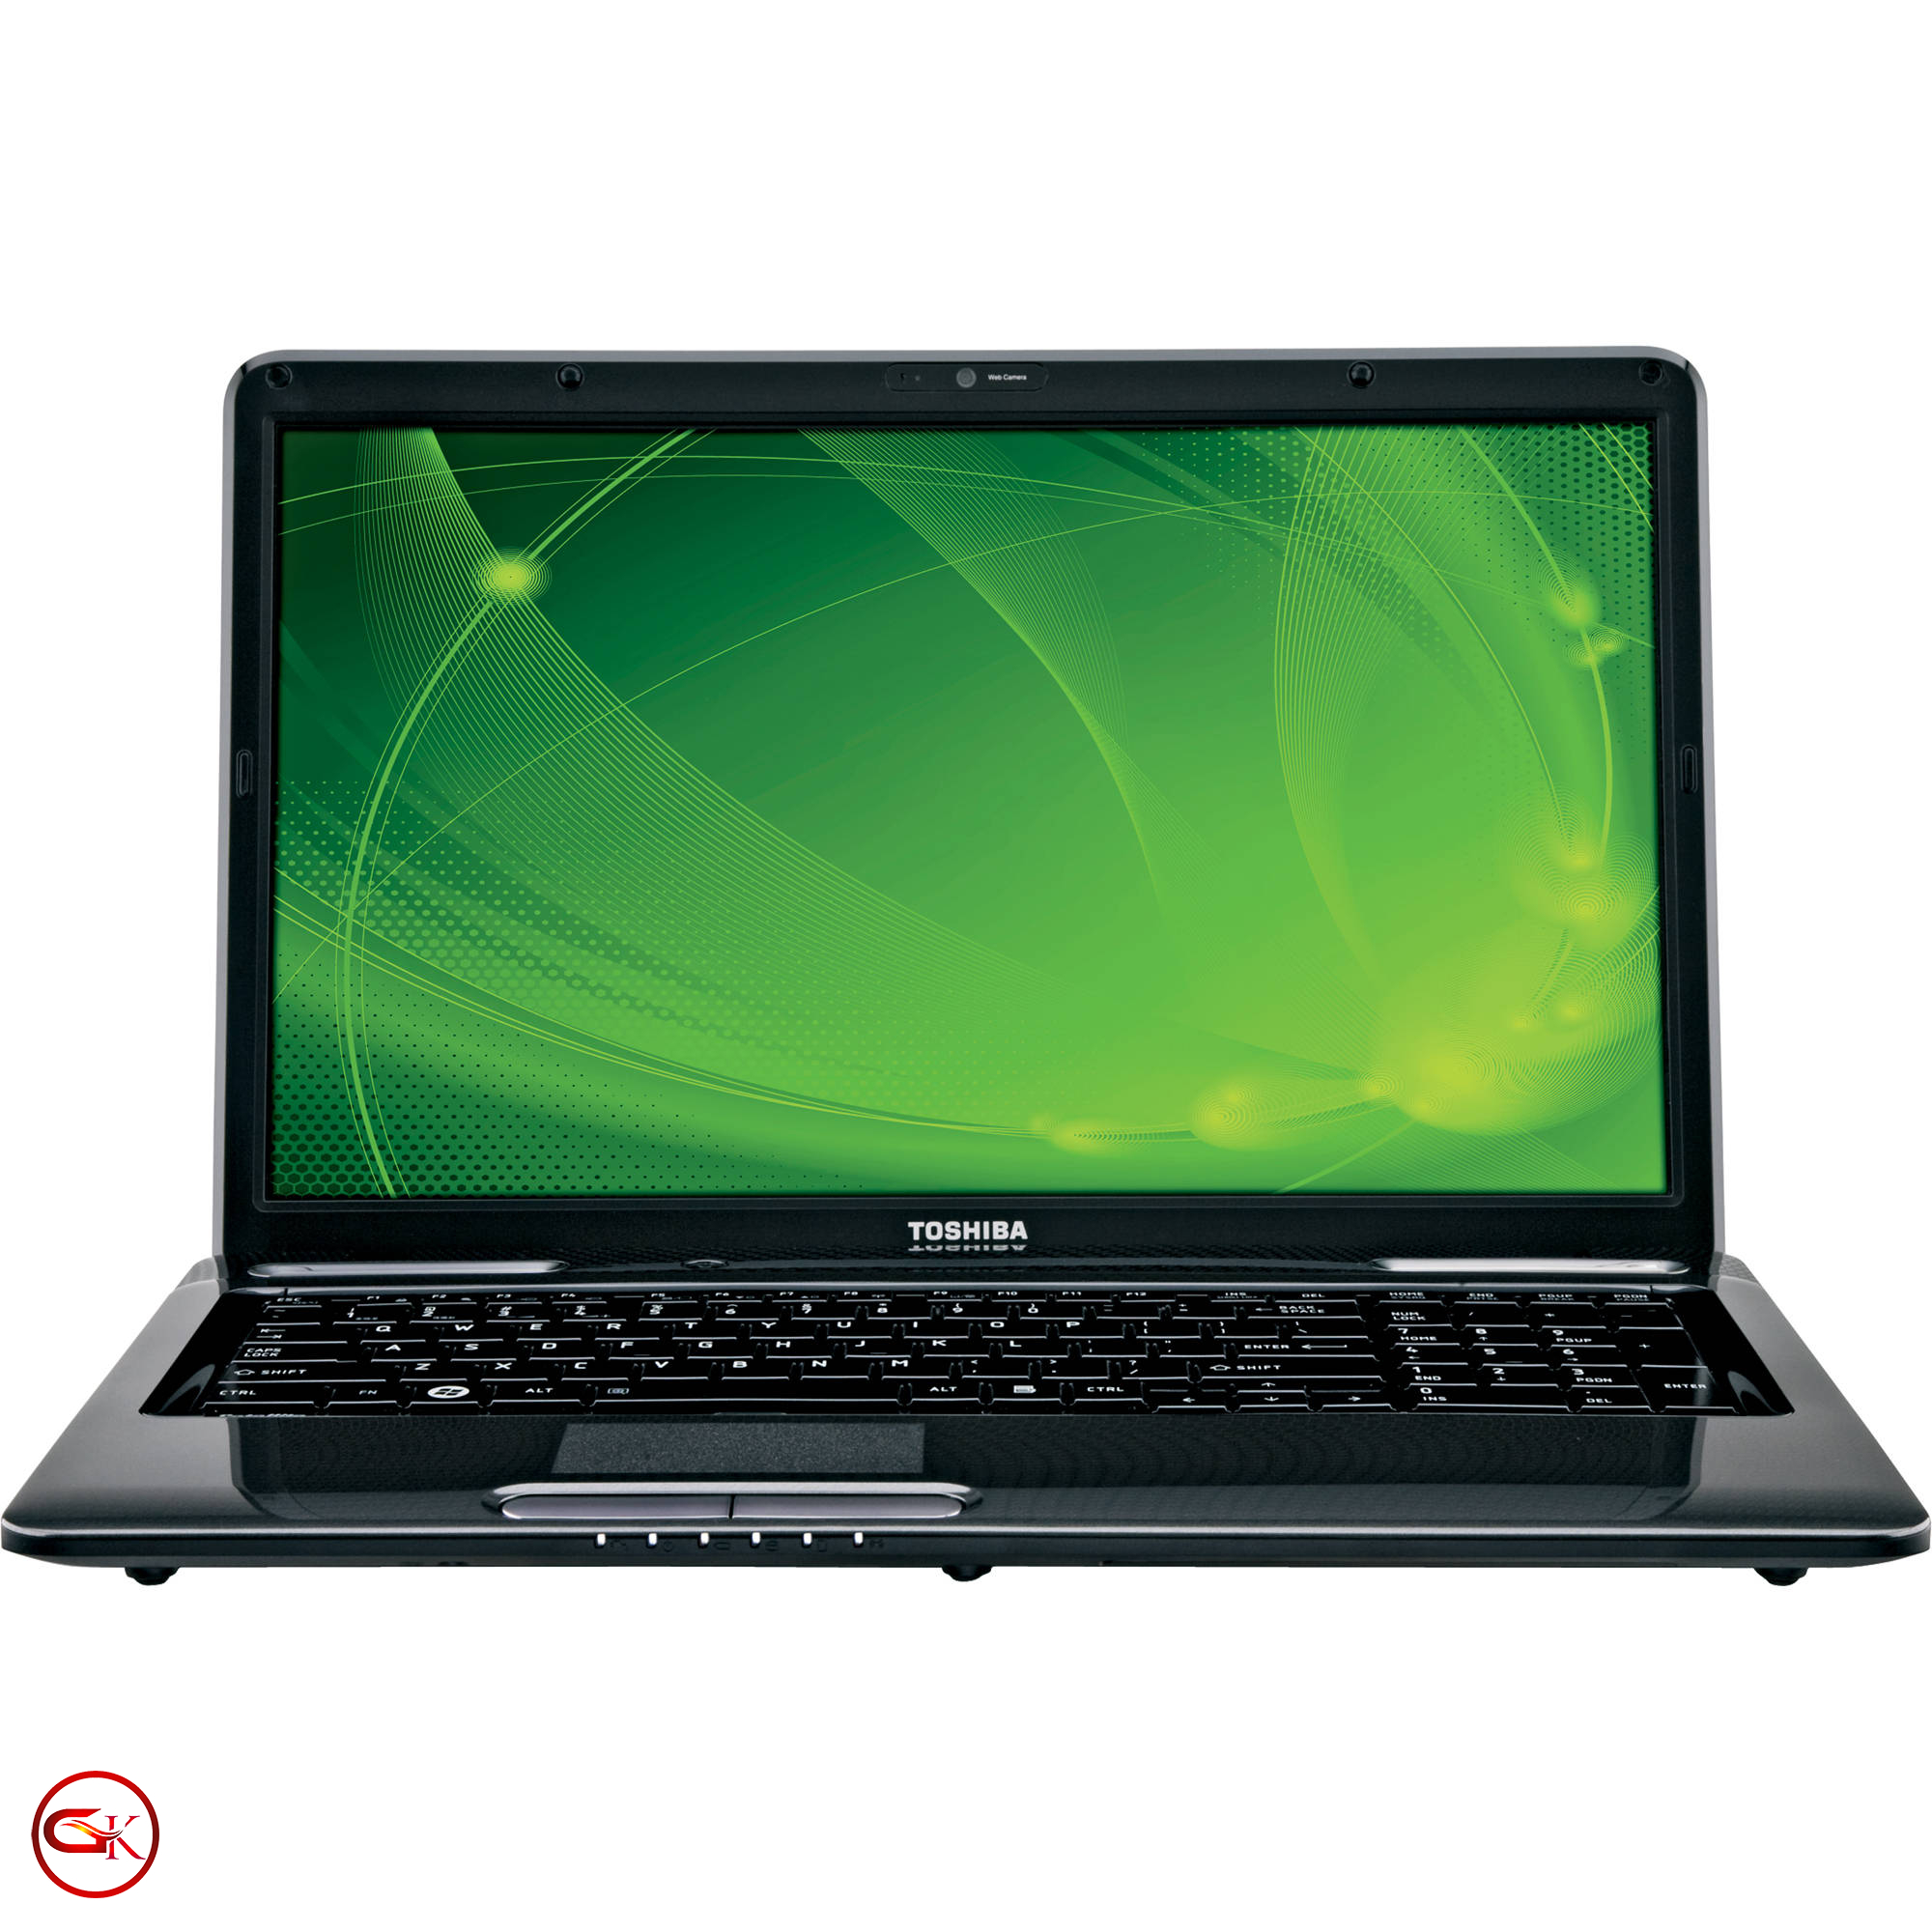 Toshiba Satellite L675D | i3 | RAM 4G | 500G | Intel HD Graphic